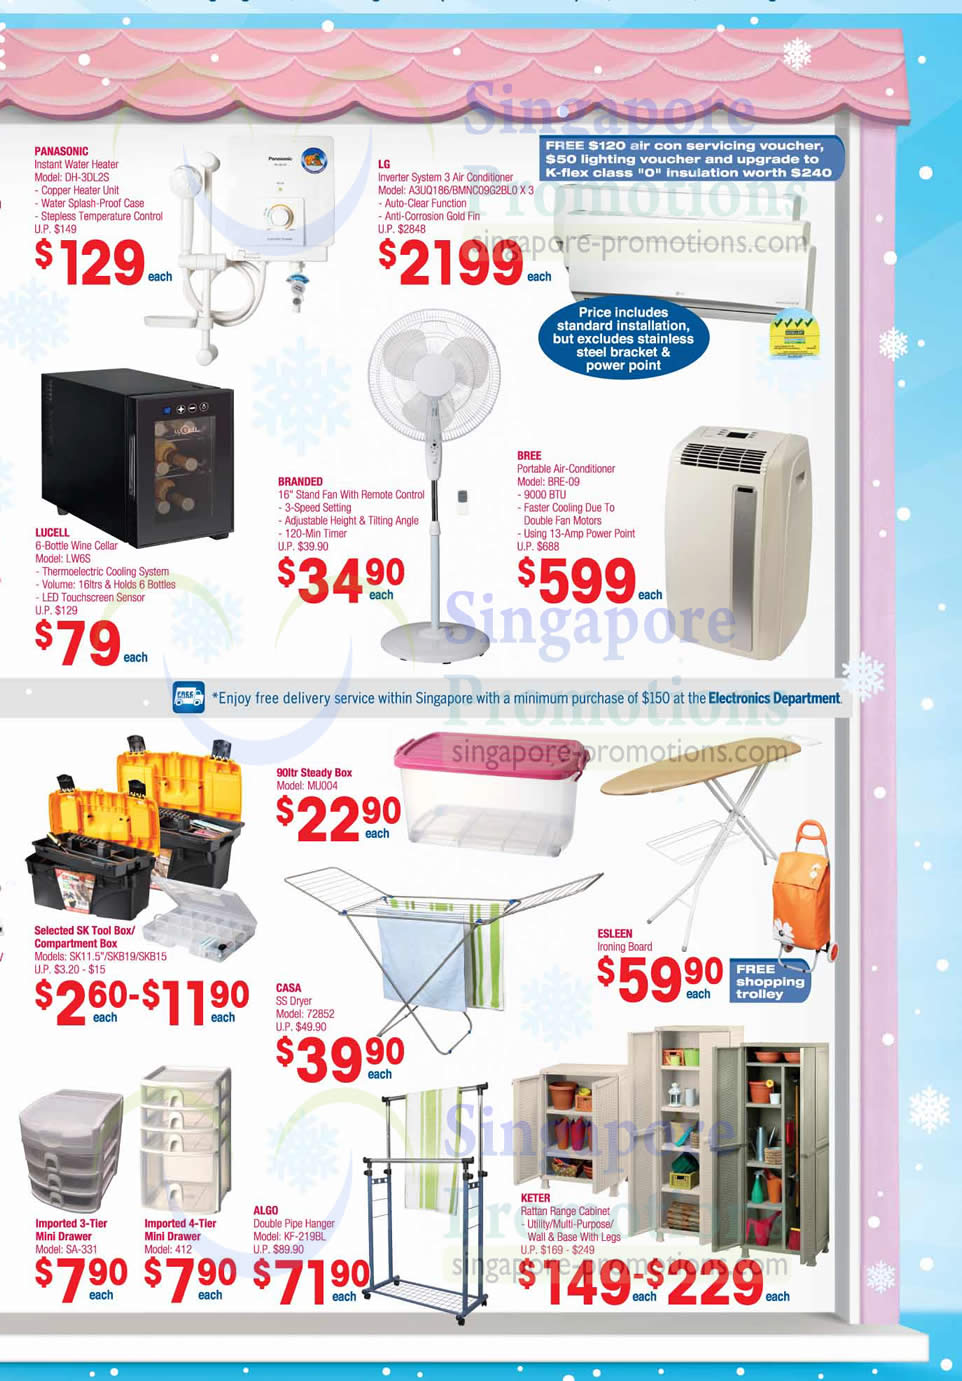 Electronics, Household Panasonic DH-3DL2S Water Heater, Lucell LW6S Wine Cellar, Bree BRE-09 Air Conditioner